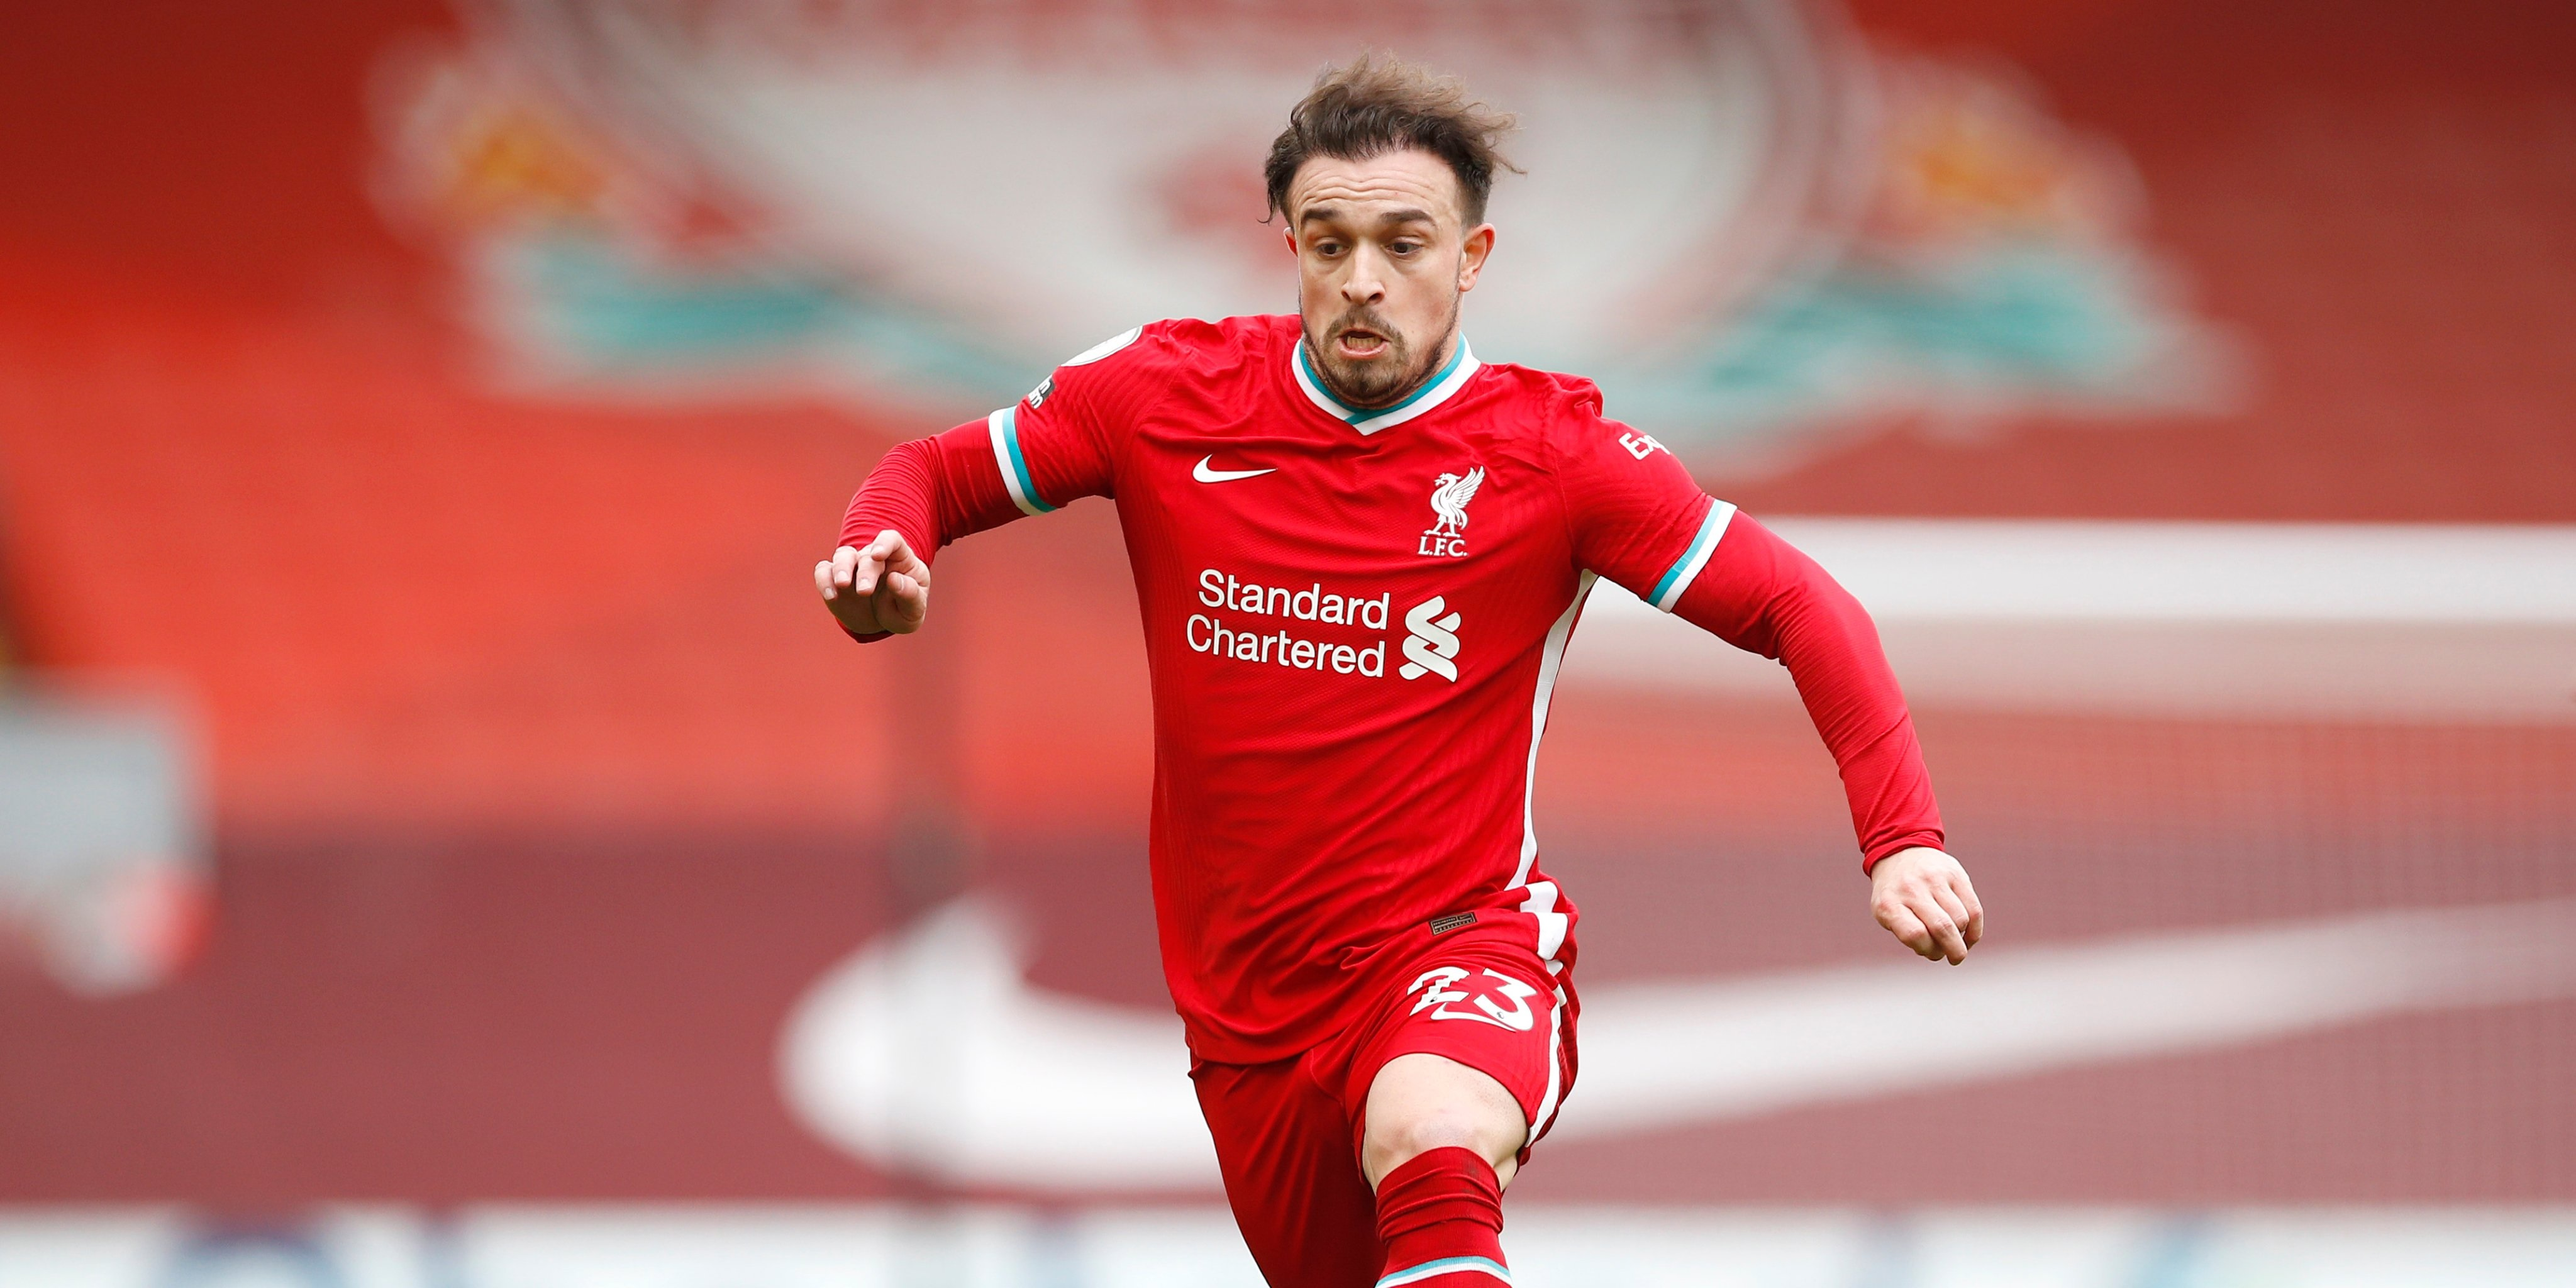 """Shaqiri explains why it's been so easy for 'smaller teams' to get results at Anfield: """"There is no pressure"""""""